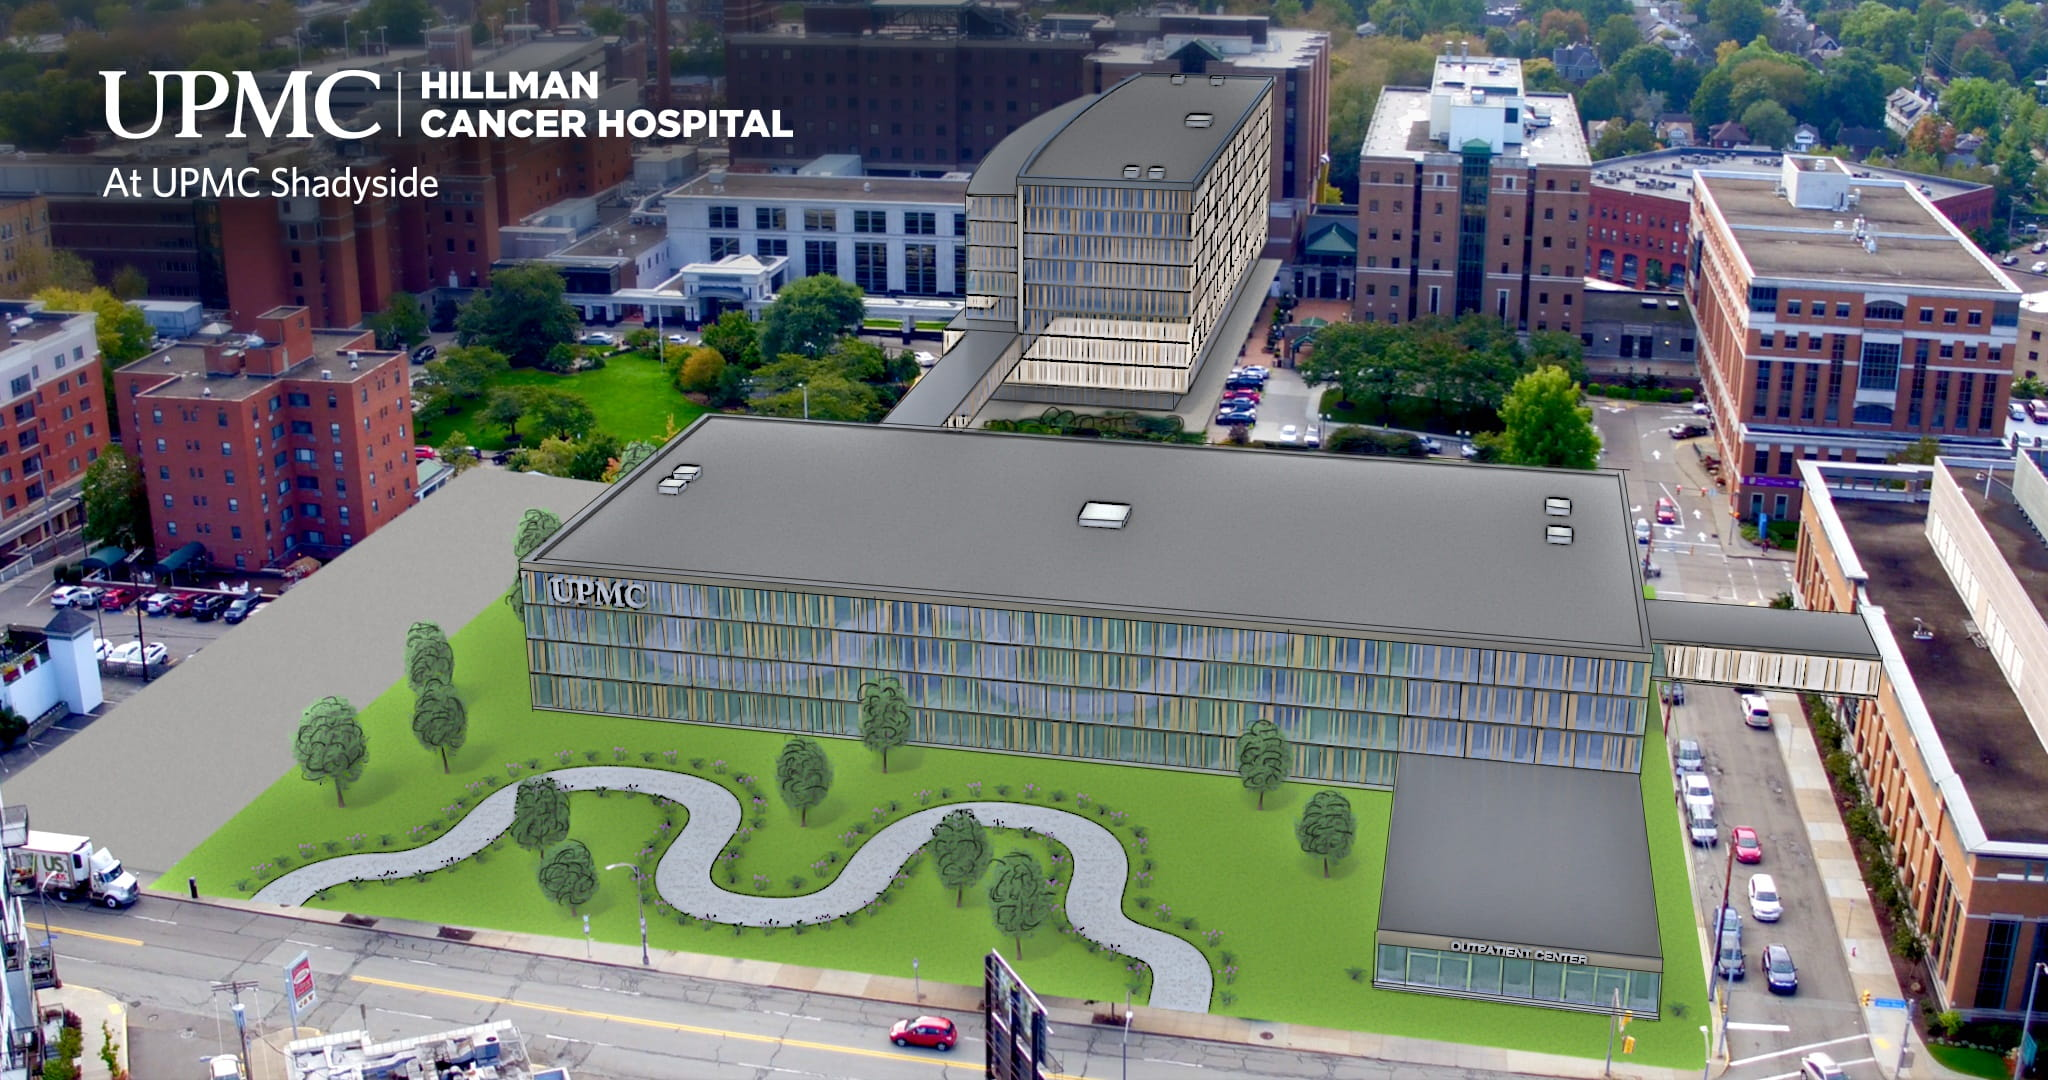 UPMC Hillman Cancer Hospital at UPMC Shadyside artist rendering